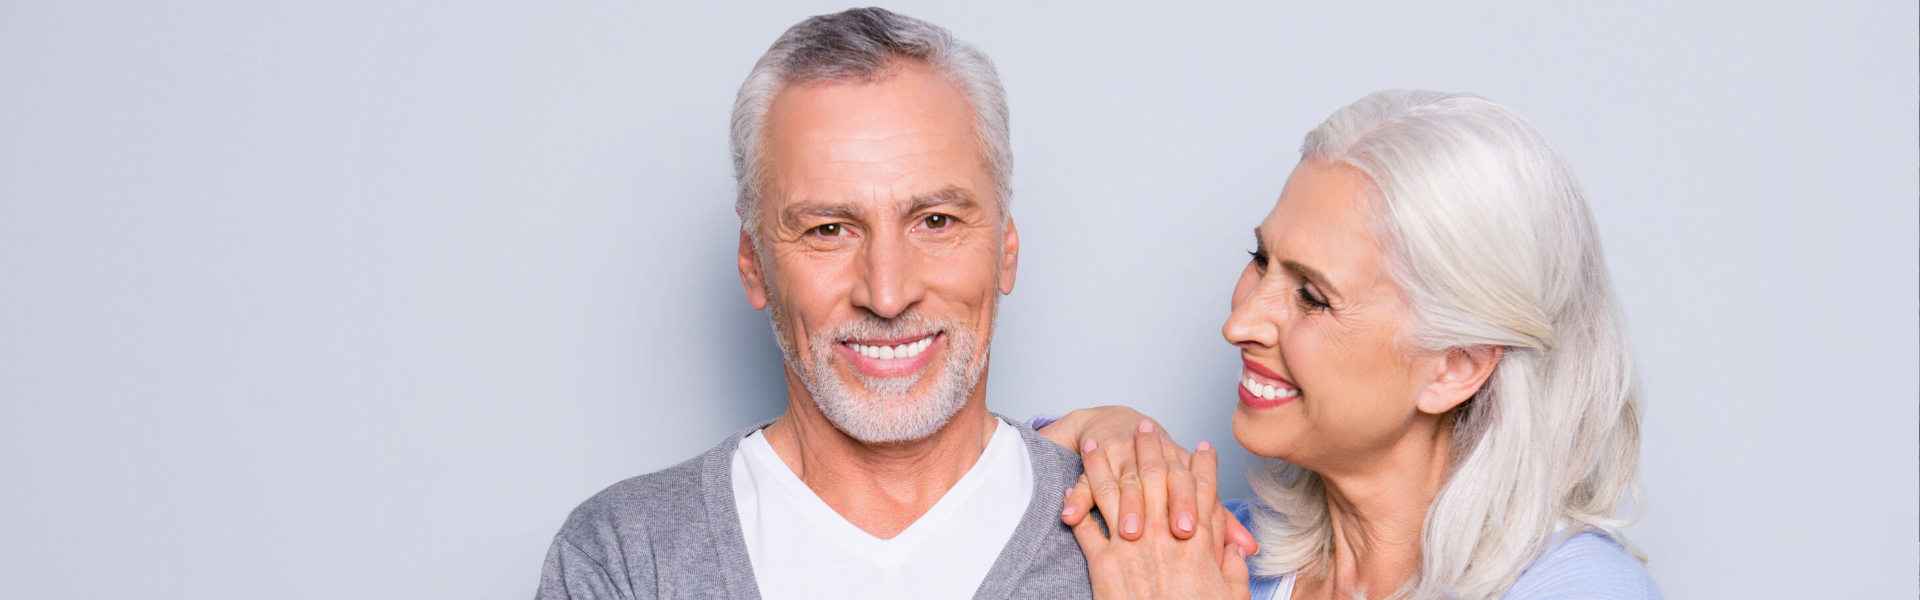 Dental Implants – What Are They? Do I Need Them?